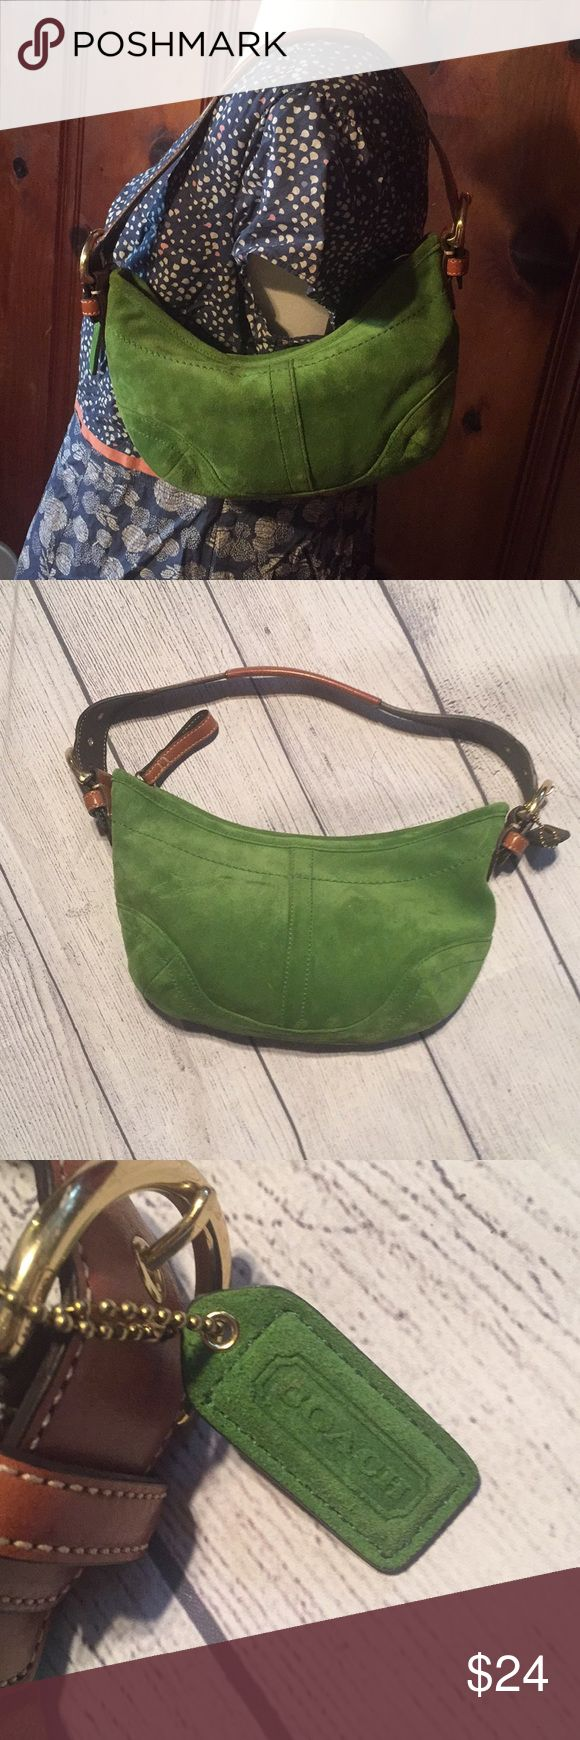 Small Green Suede Leather Coach Hobo Bag Authentic in excellent preloved condition. Any questions, just ask! Coach Bags Hobos